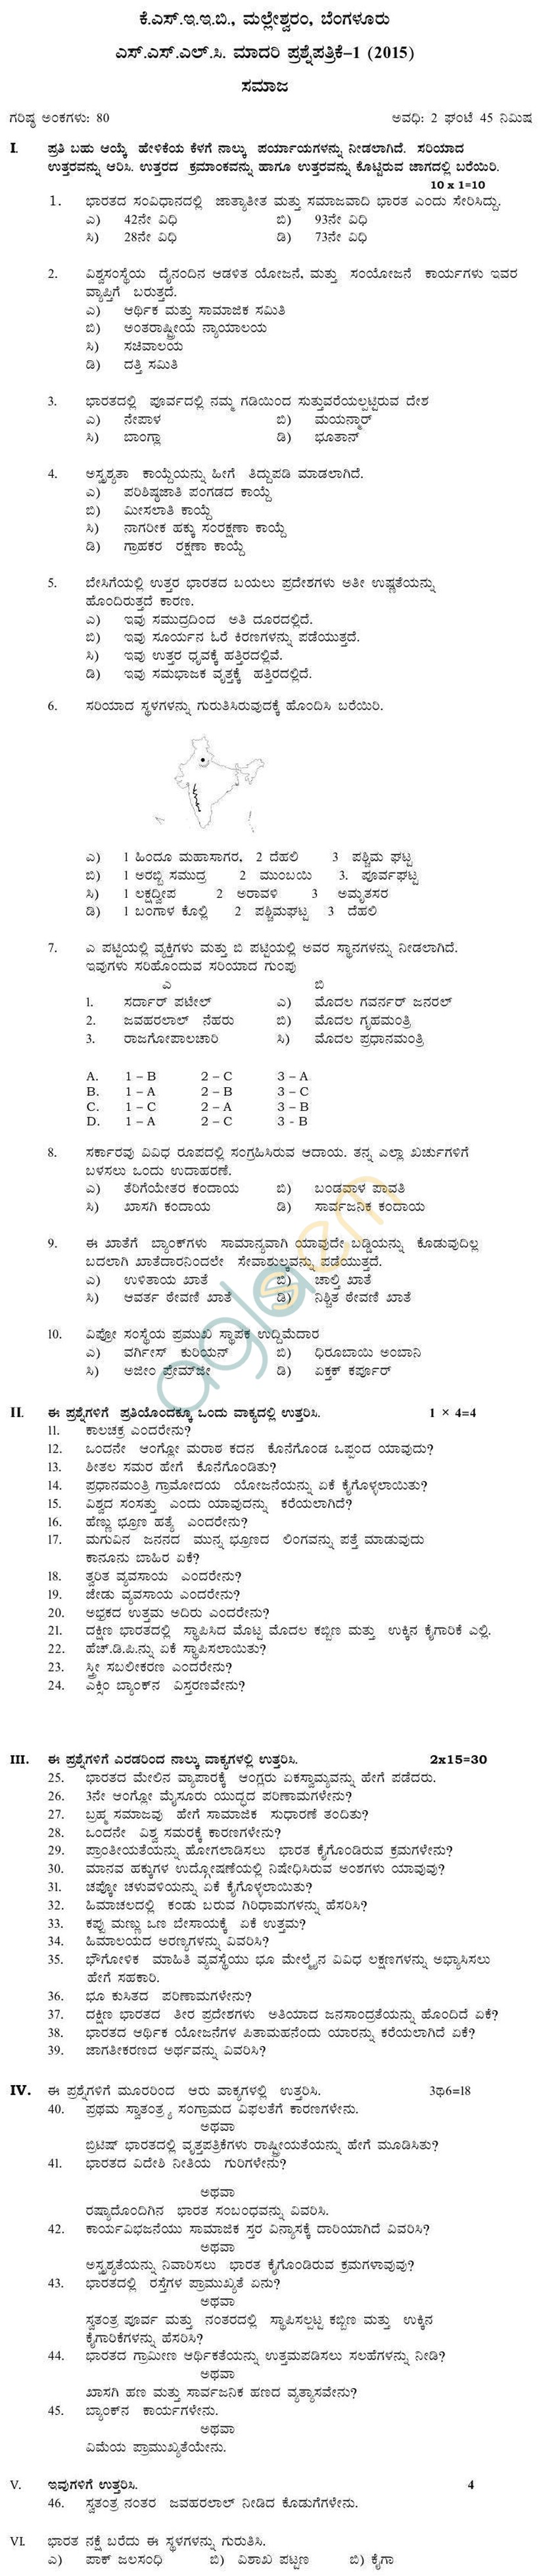 Karnataka board sslc model question papers 2015 for social science karnataka board sslc model question papers 2015 for social science malvernweather Image collections